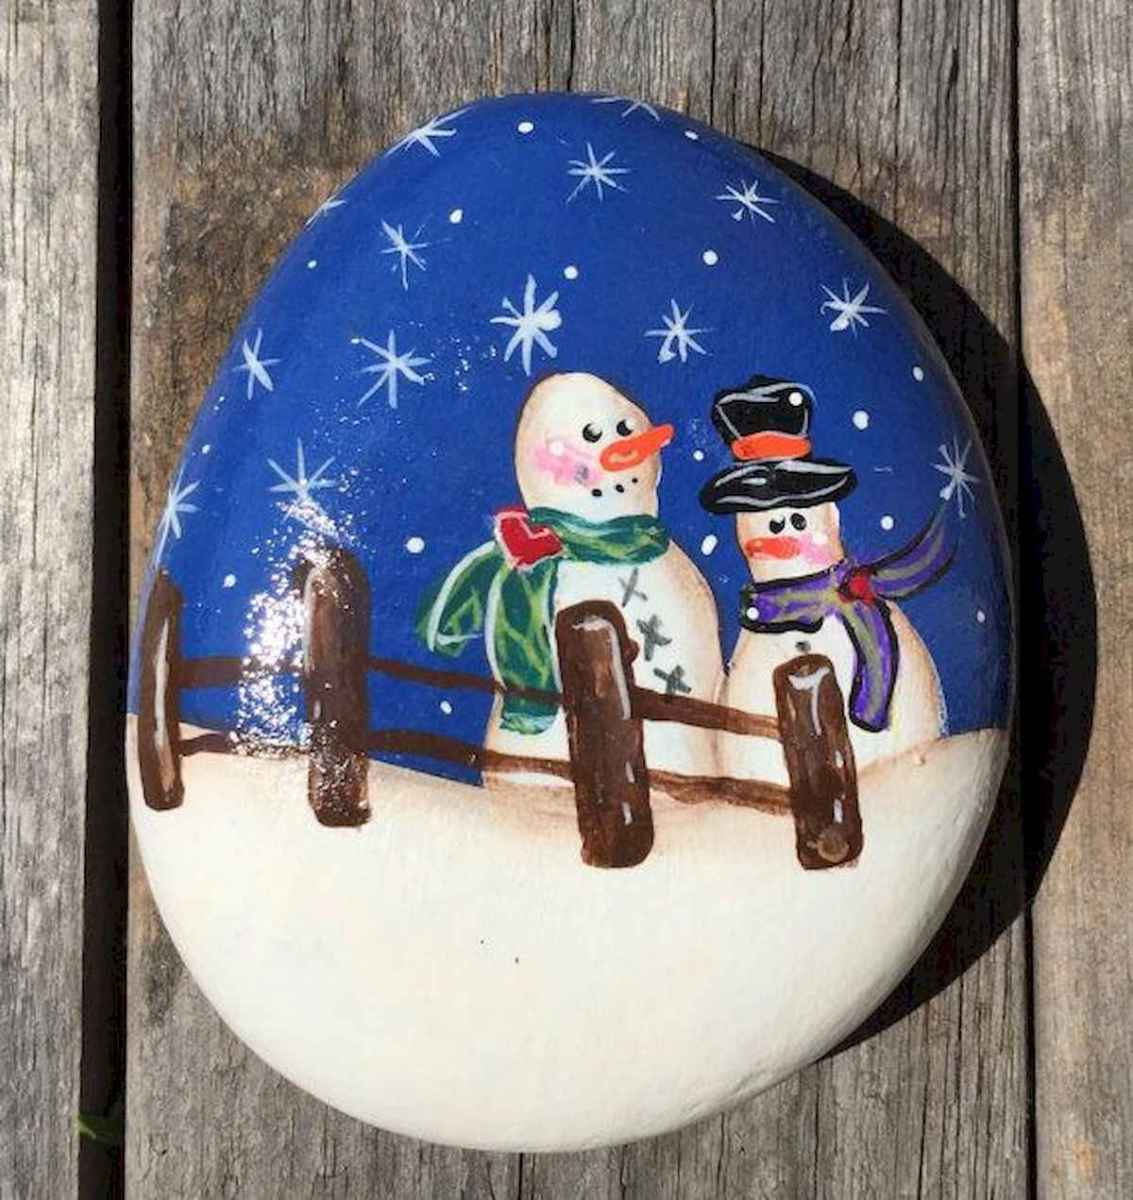 50 Easy DIY Christmas Painted Rock Design Ideas (13)